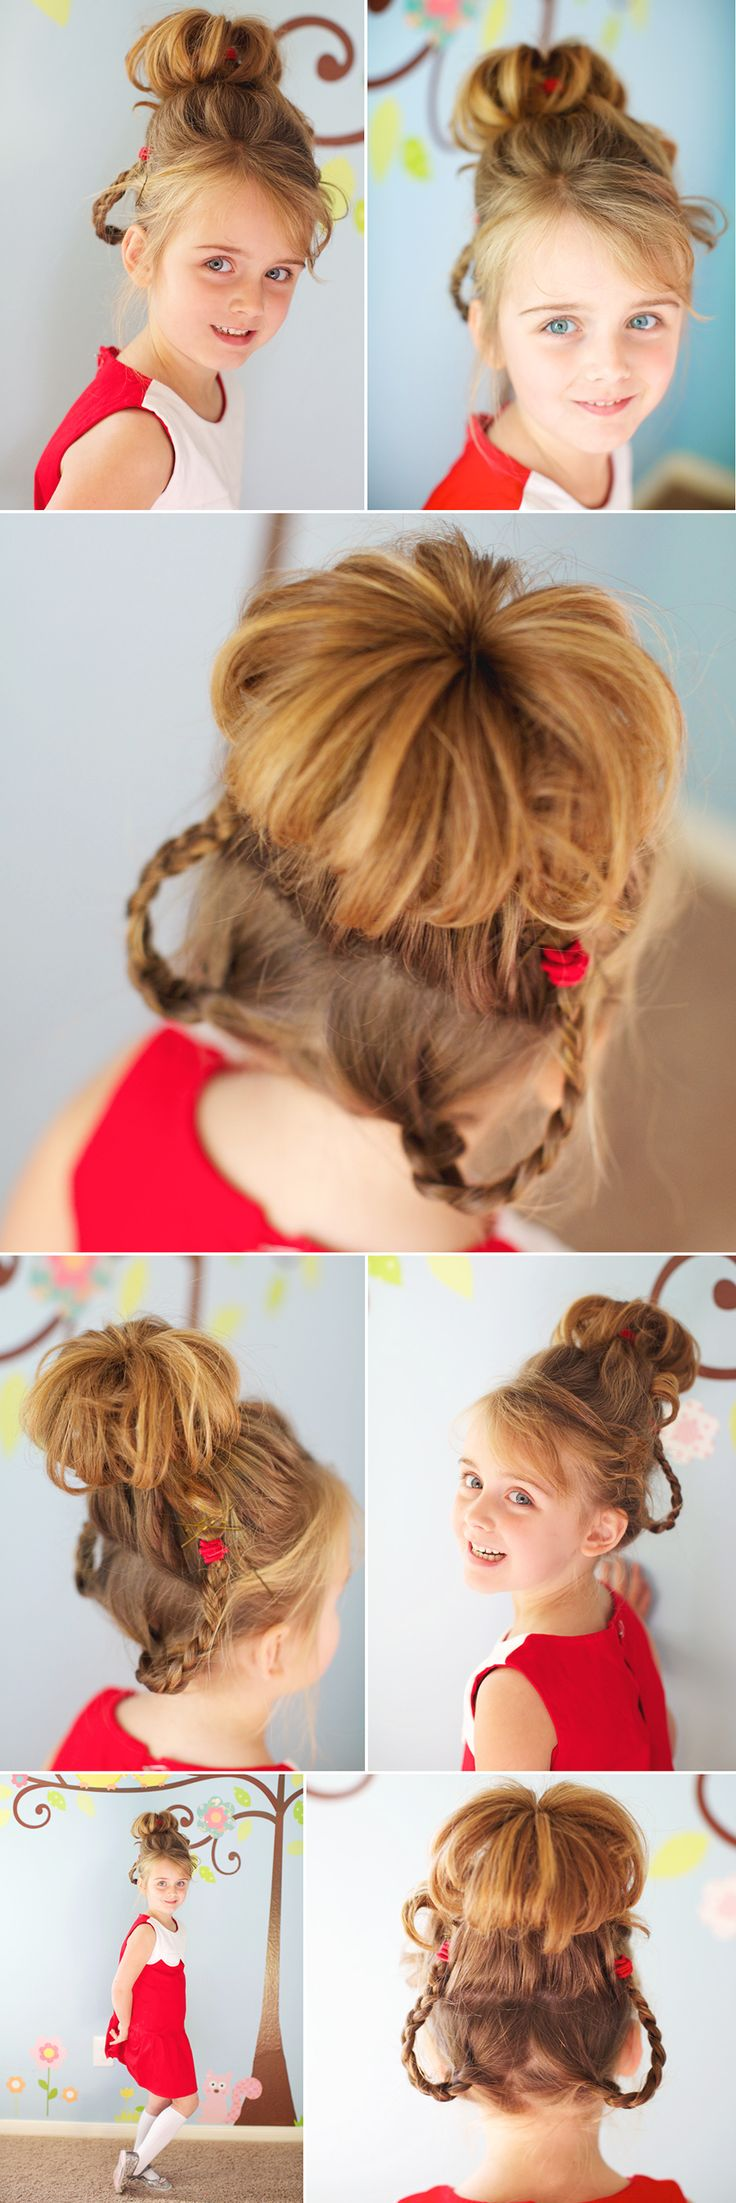 Cute hair idea for the Christmas party!  the theme is Whoville